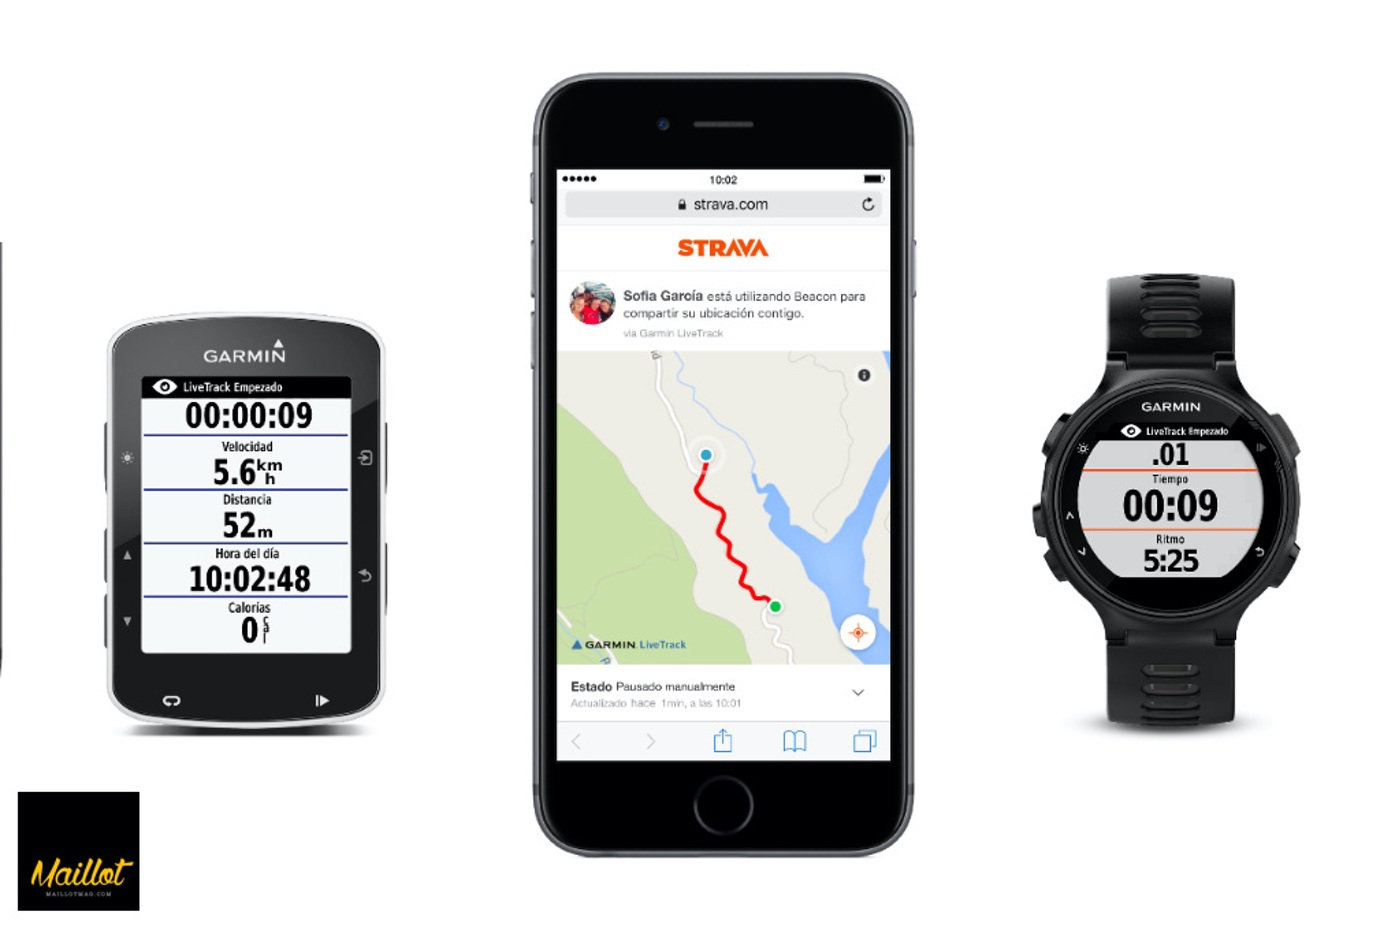 La funcionalidad Strava Beacon integrada en dispositivos Garmin